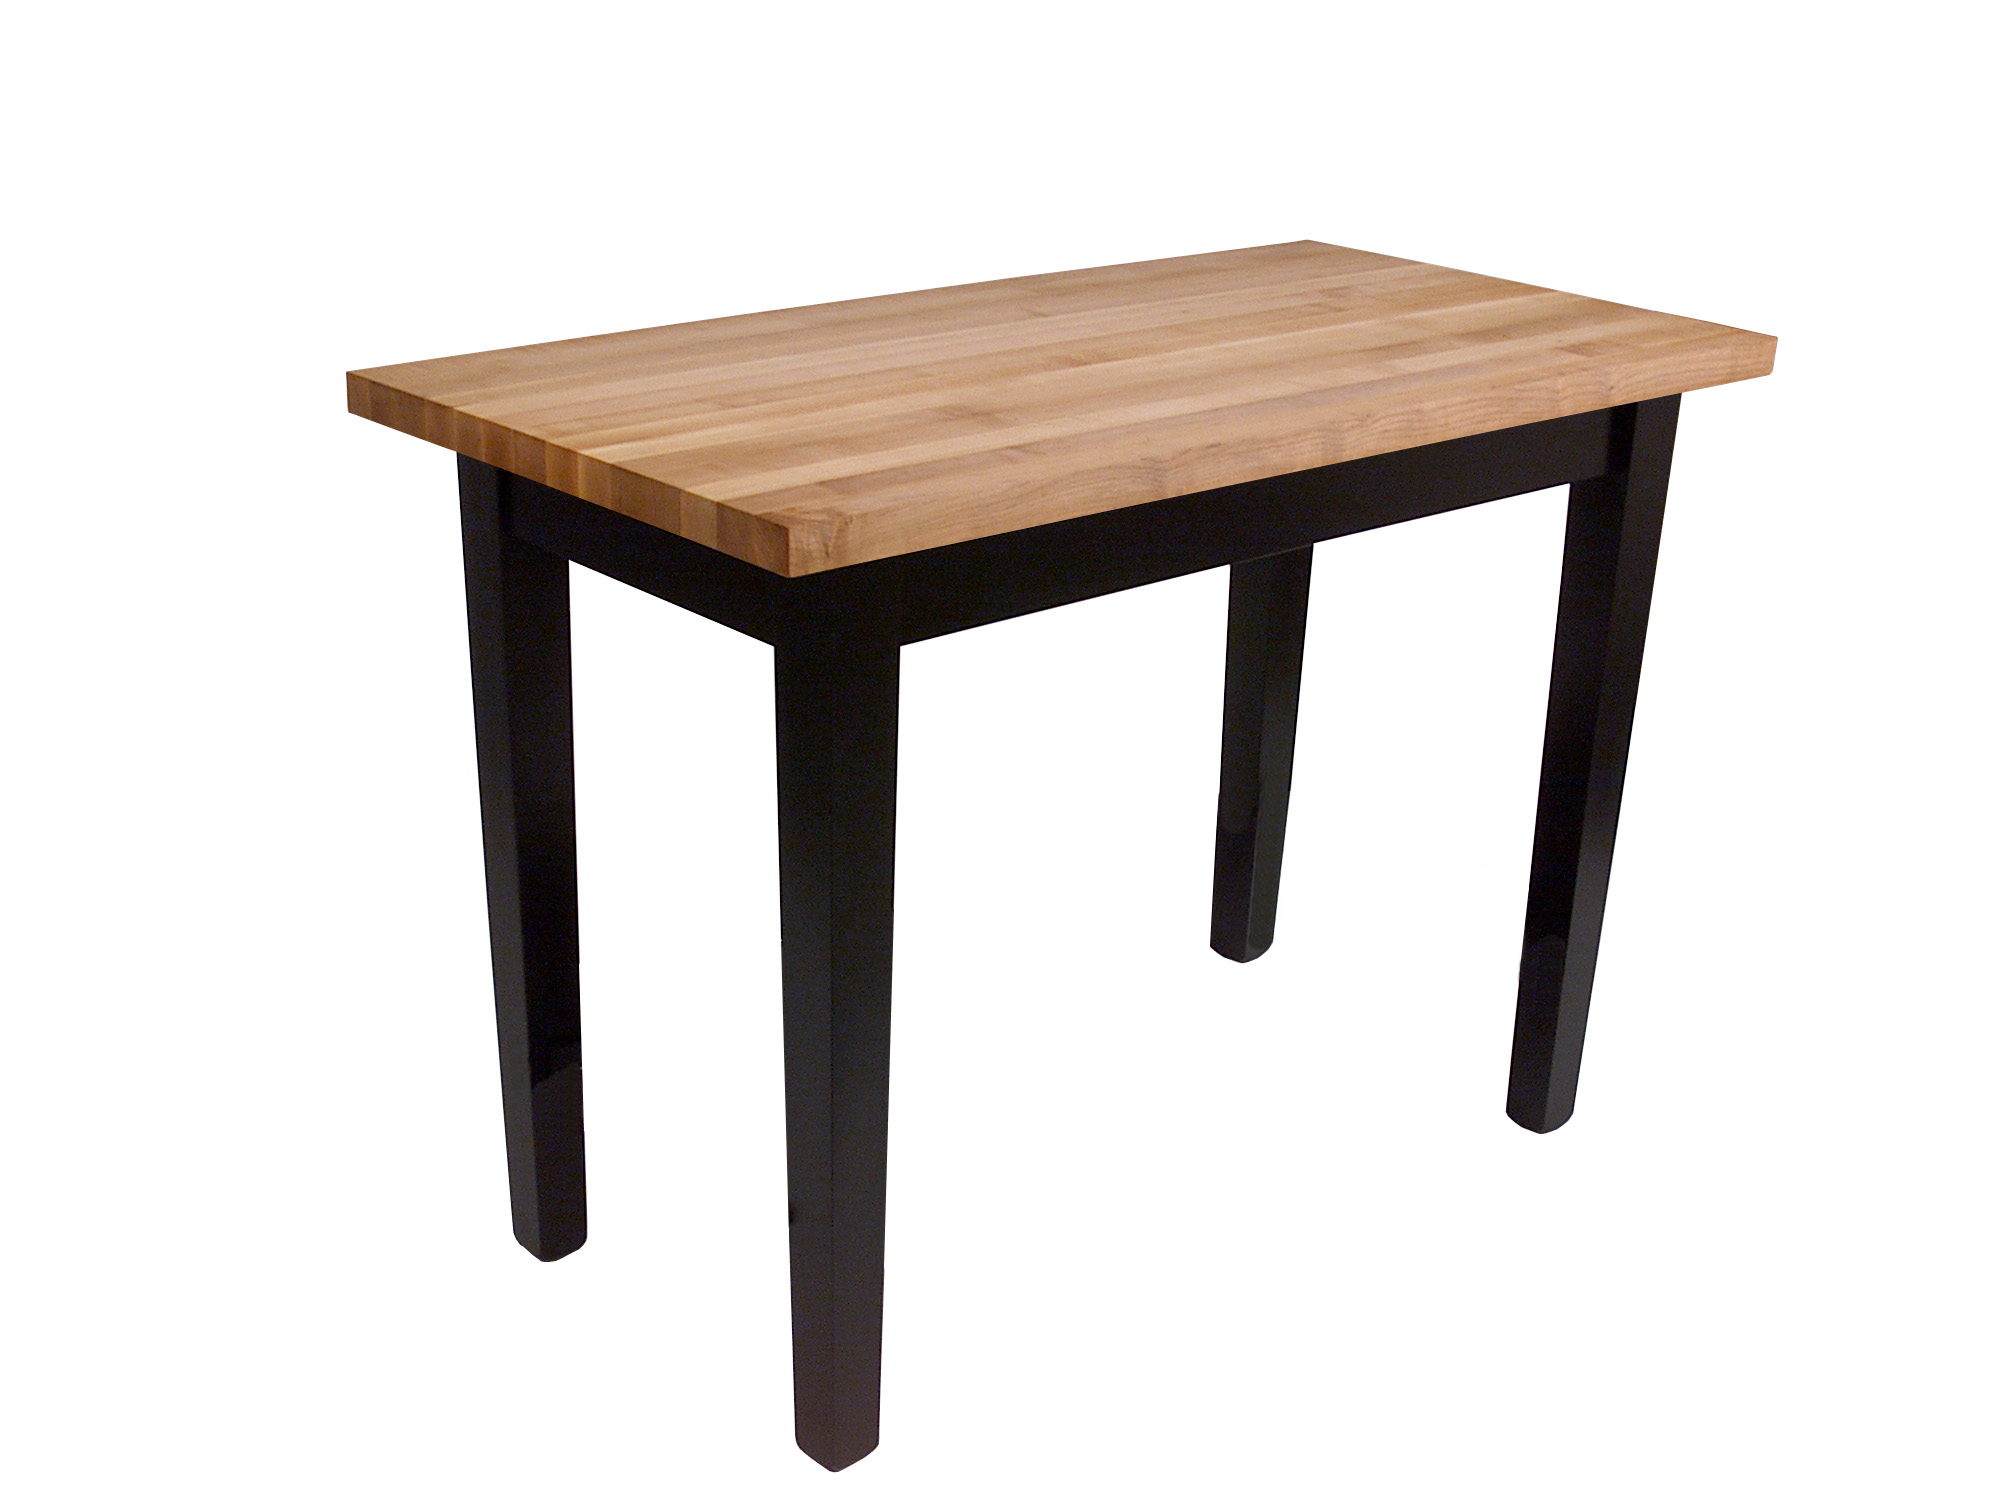 Classic Boos Country Table with black base